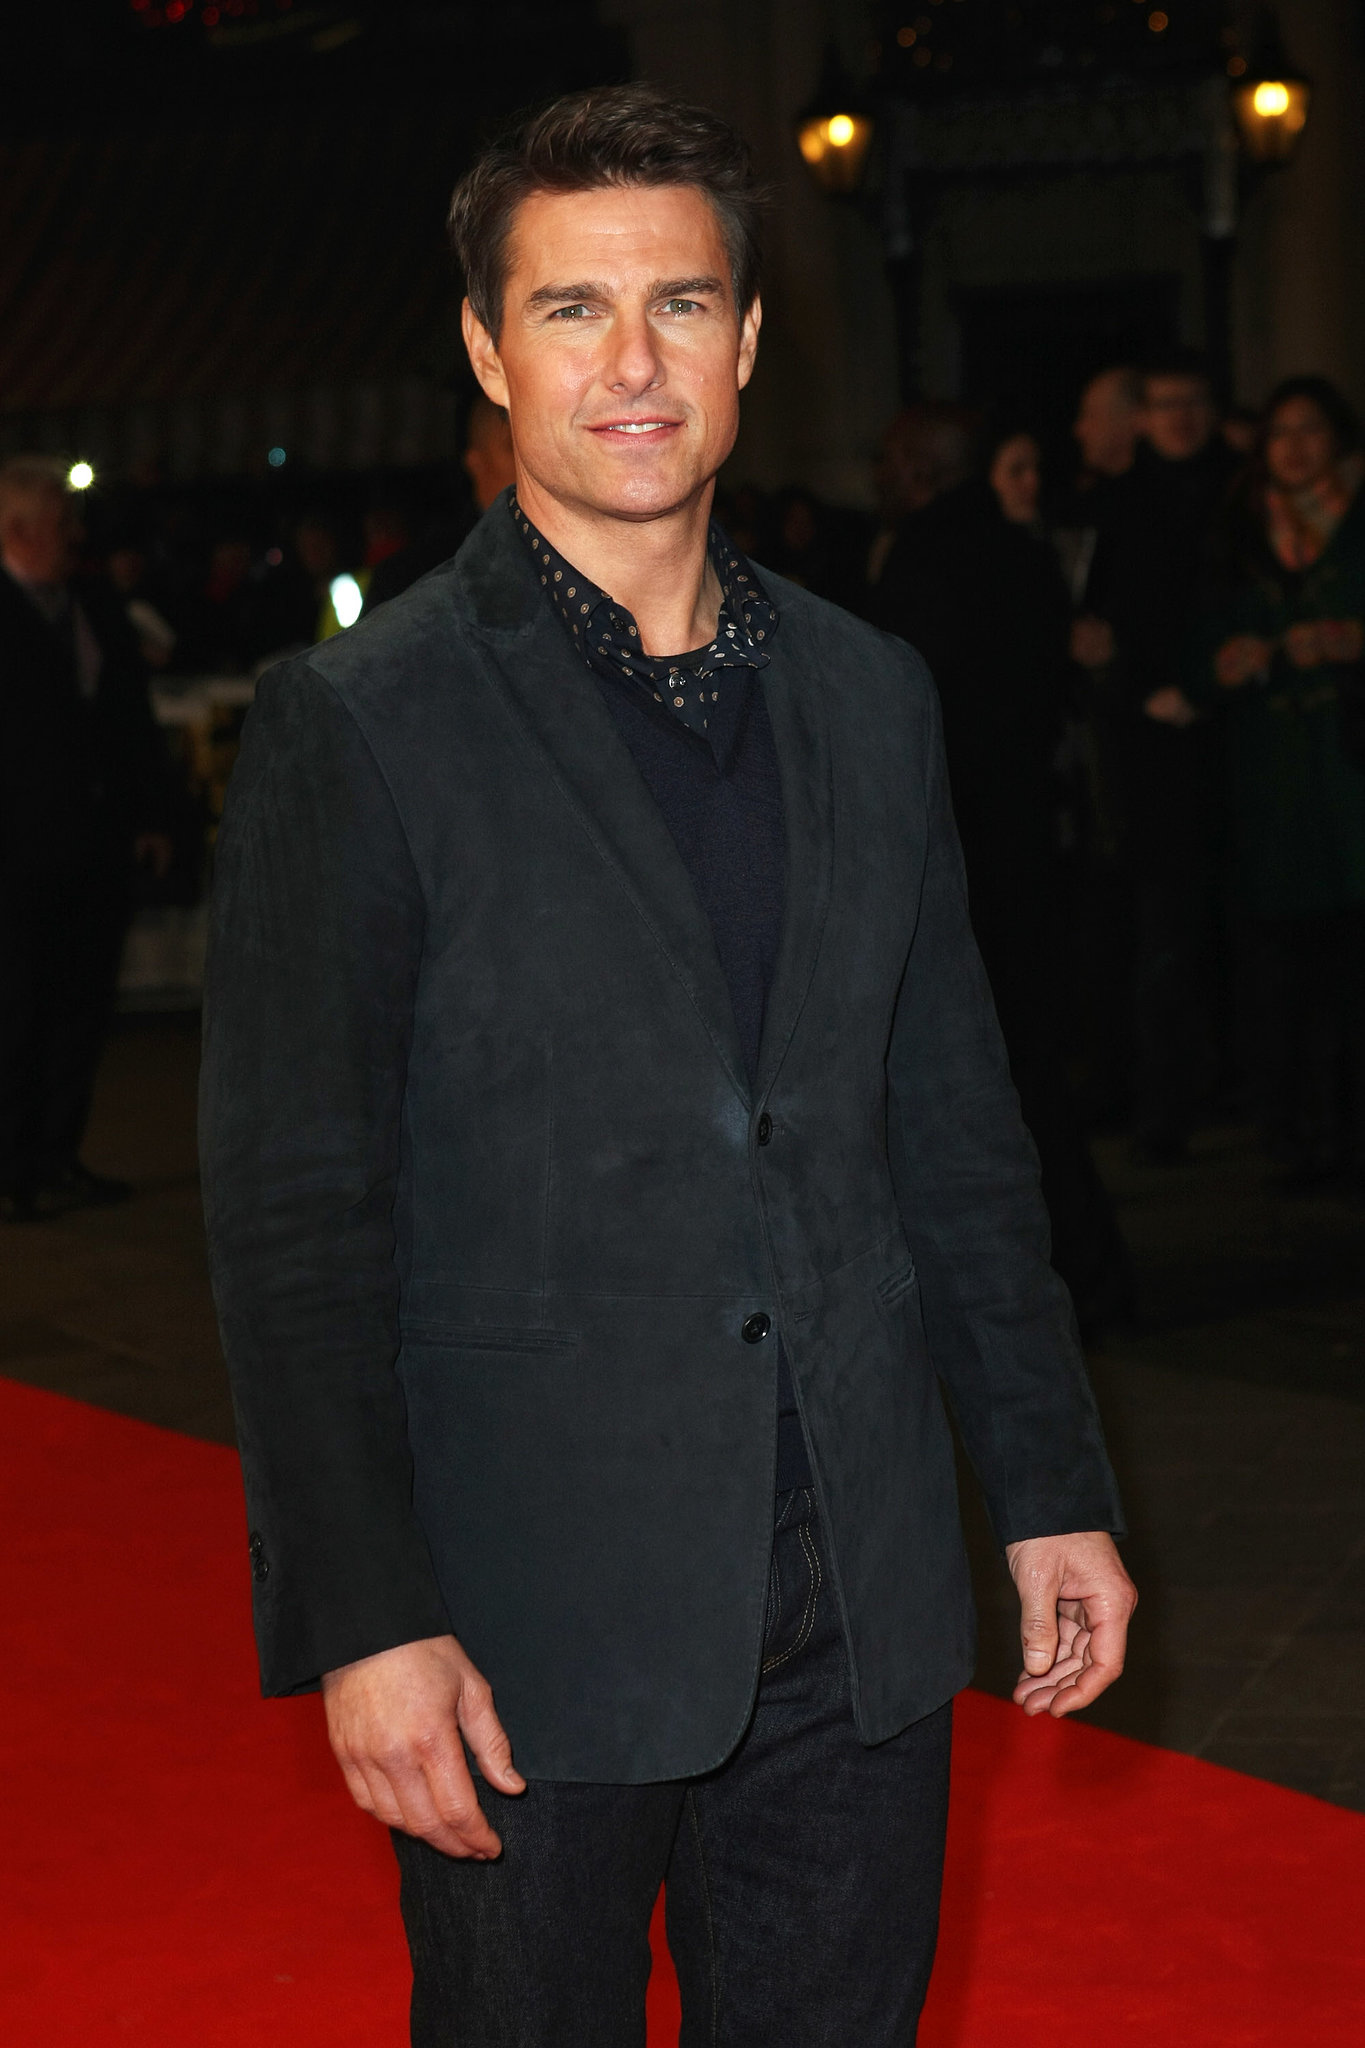 In London, Tom Cruise looked dapper on the red carpet at the world premiere of Jack Reacher in December 2012.